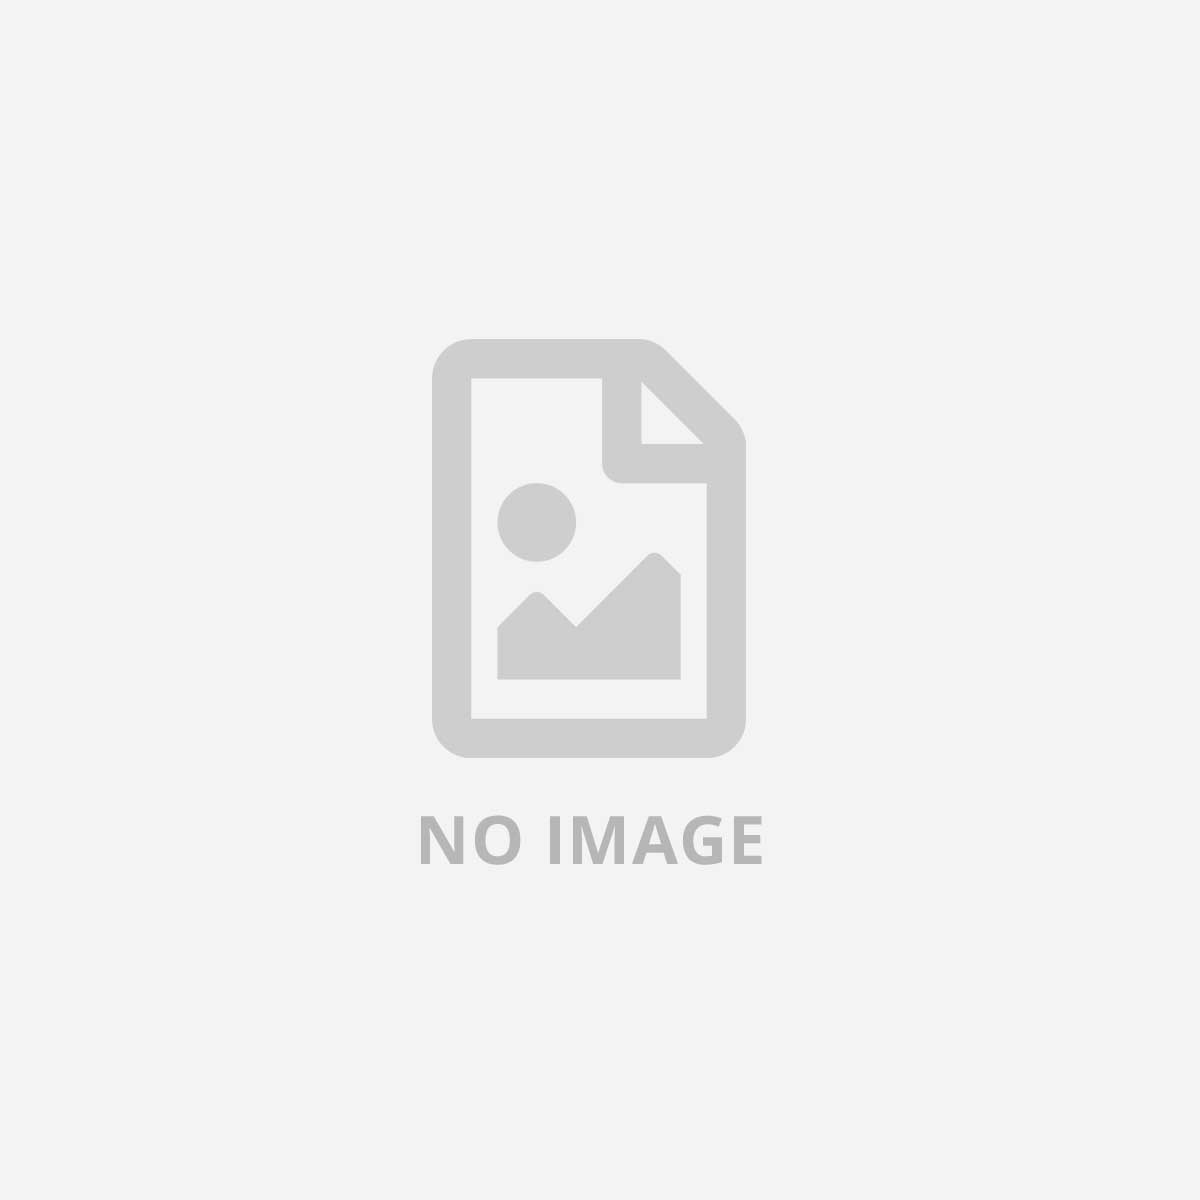 PLANTRONICS HW710 DA80 MO300 IPHONE E A BUNDLE